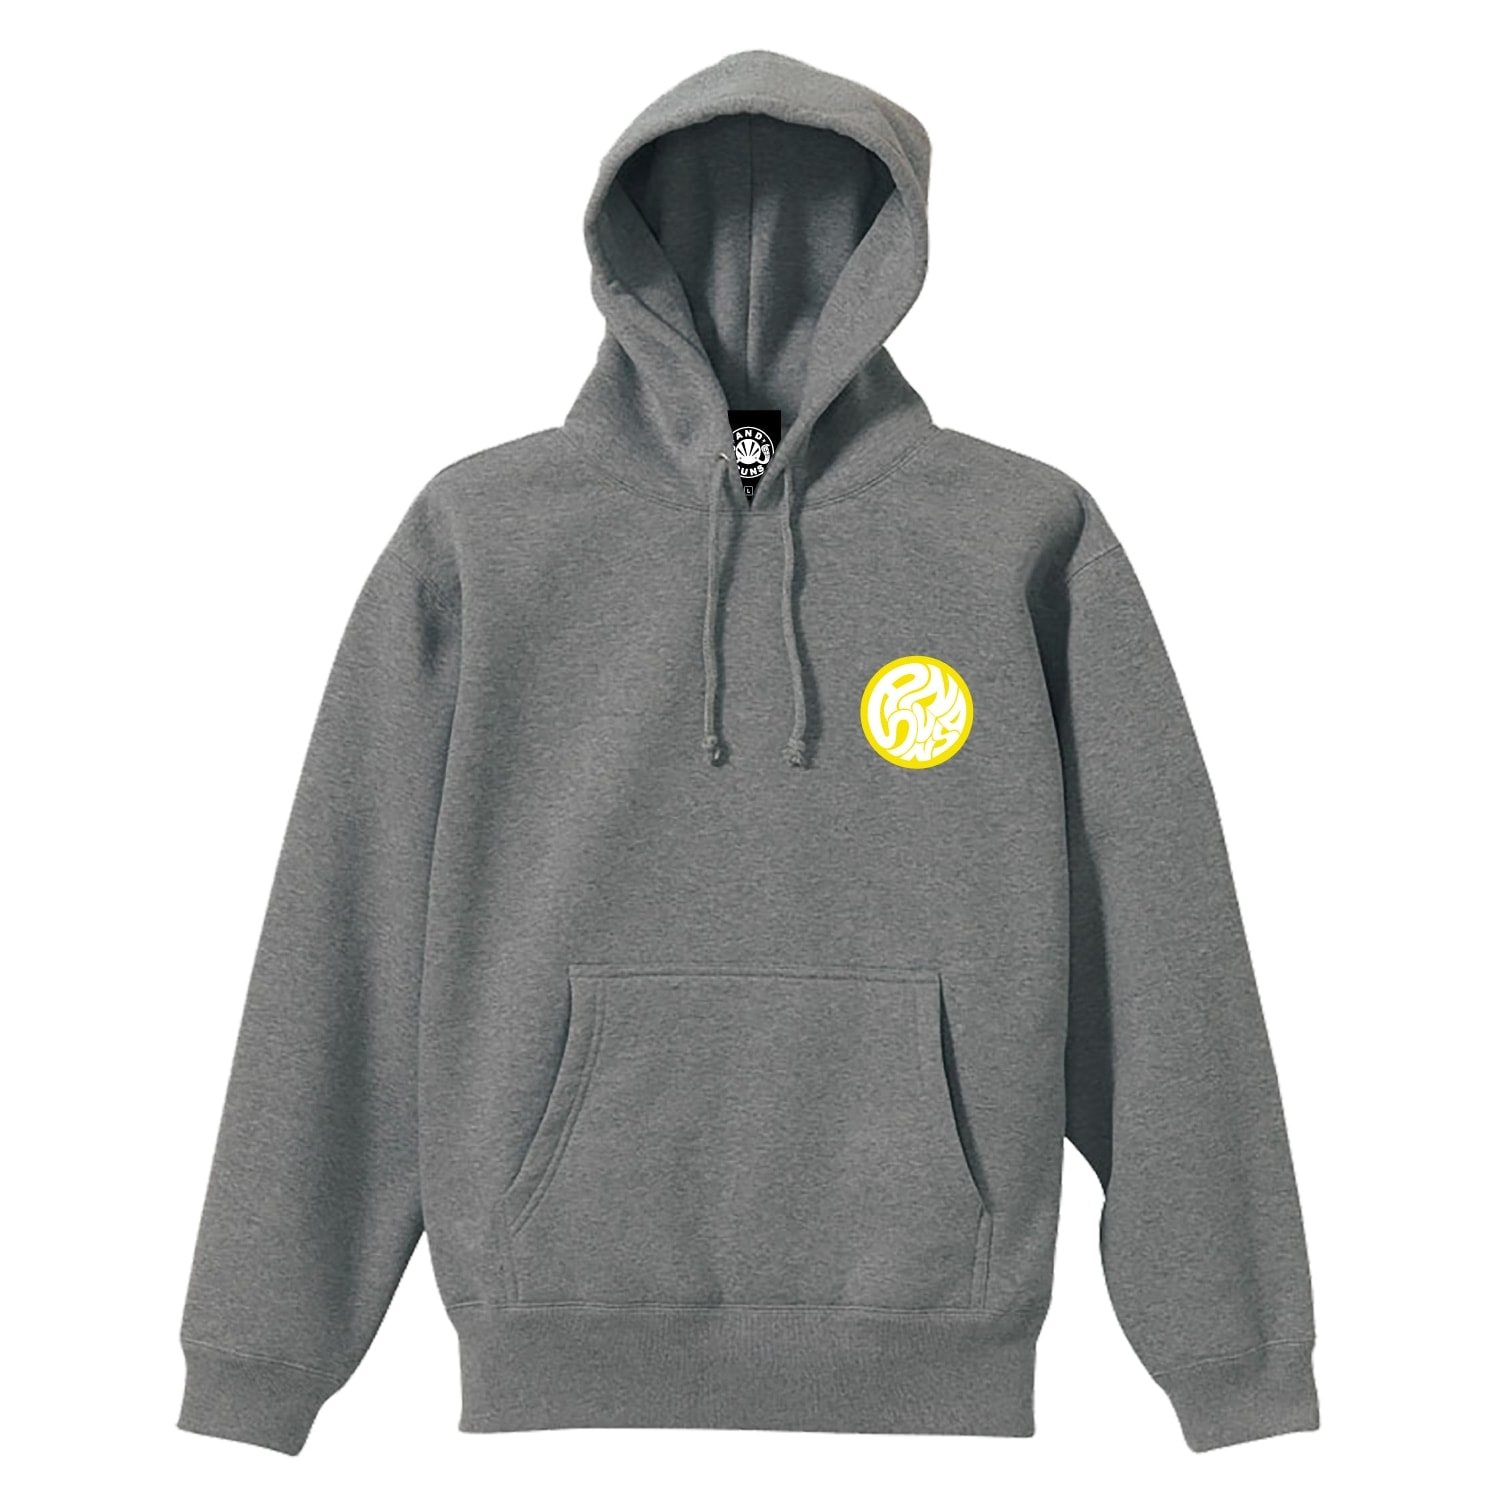 SWIRLING SUNS PULLOVER (GREY)